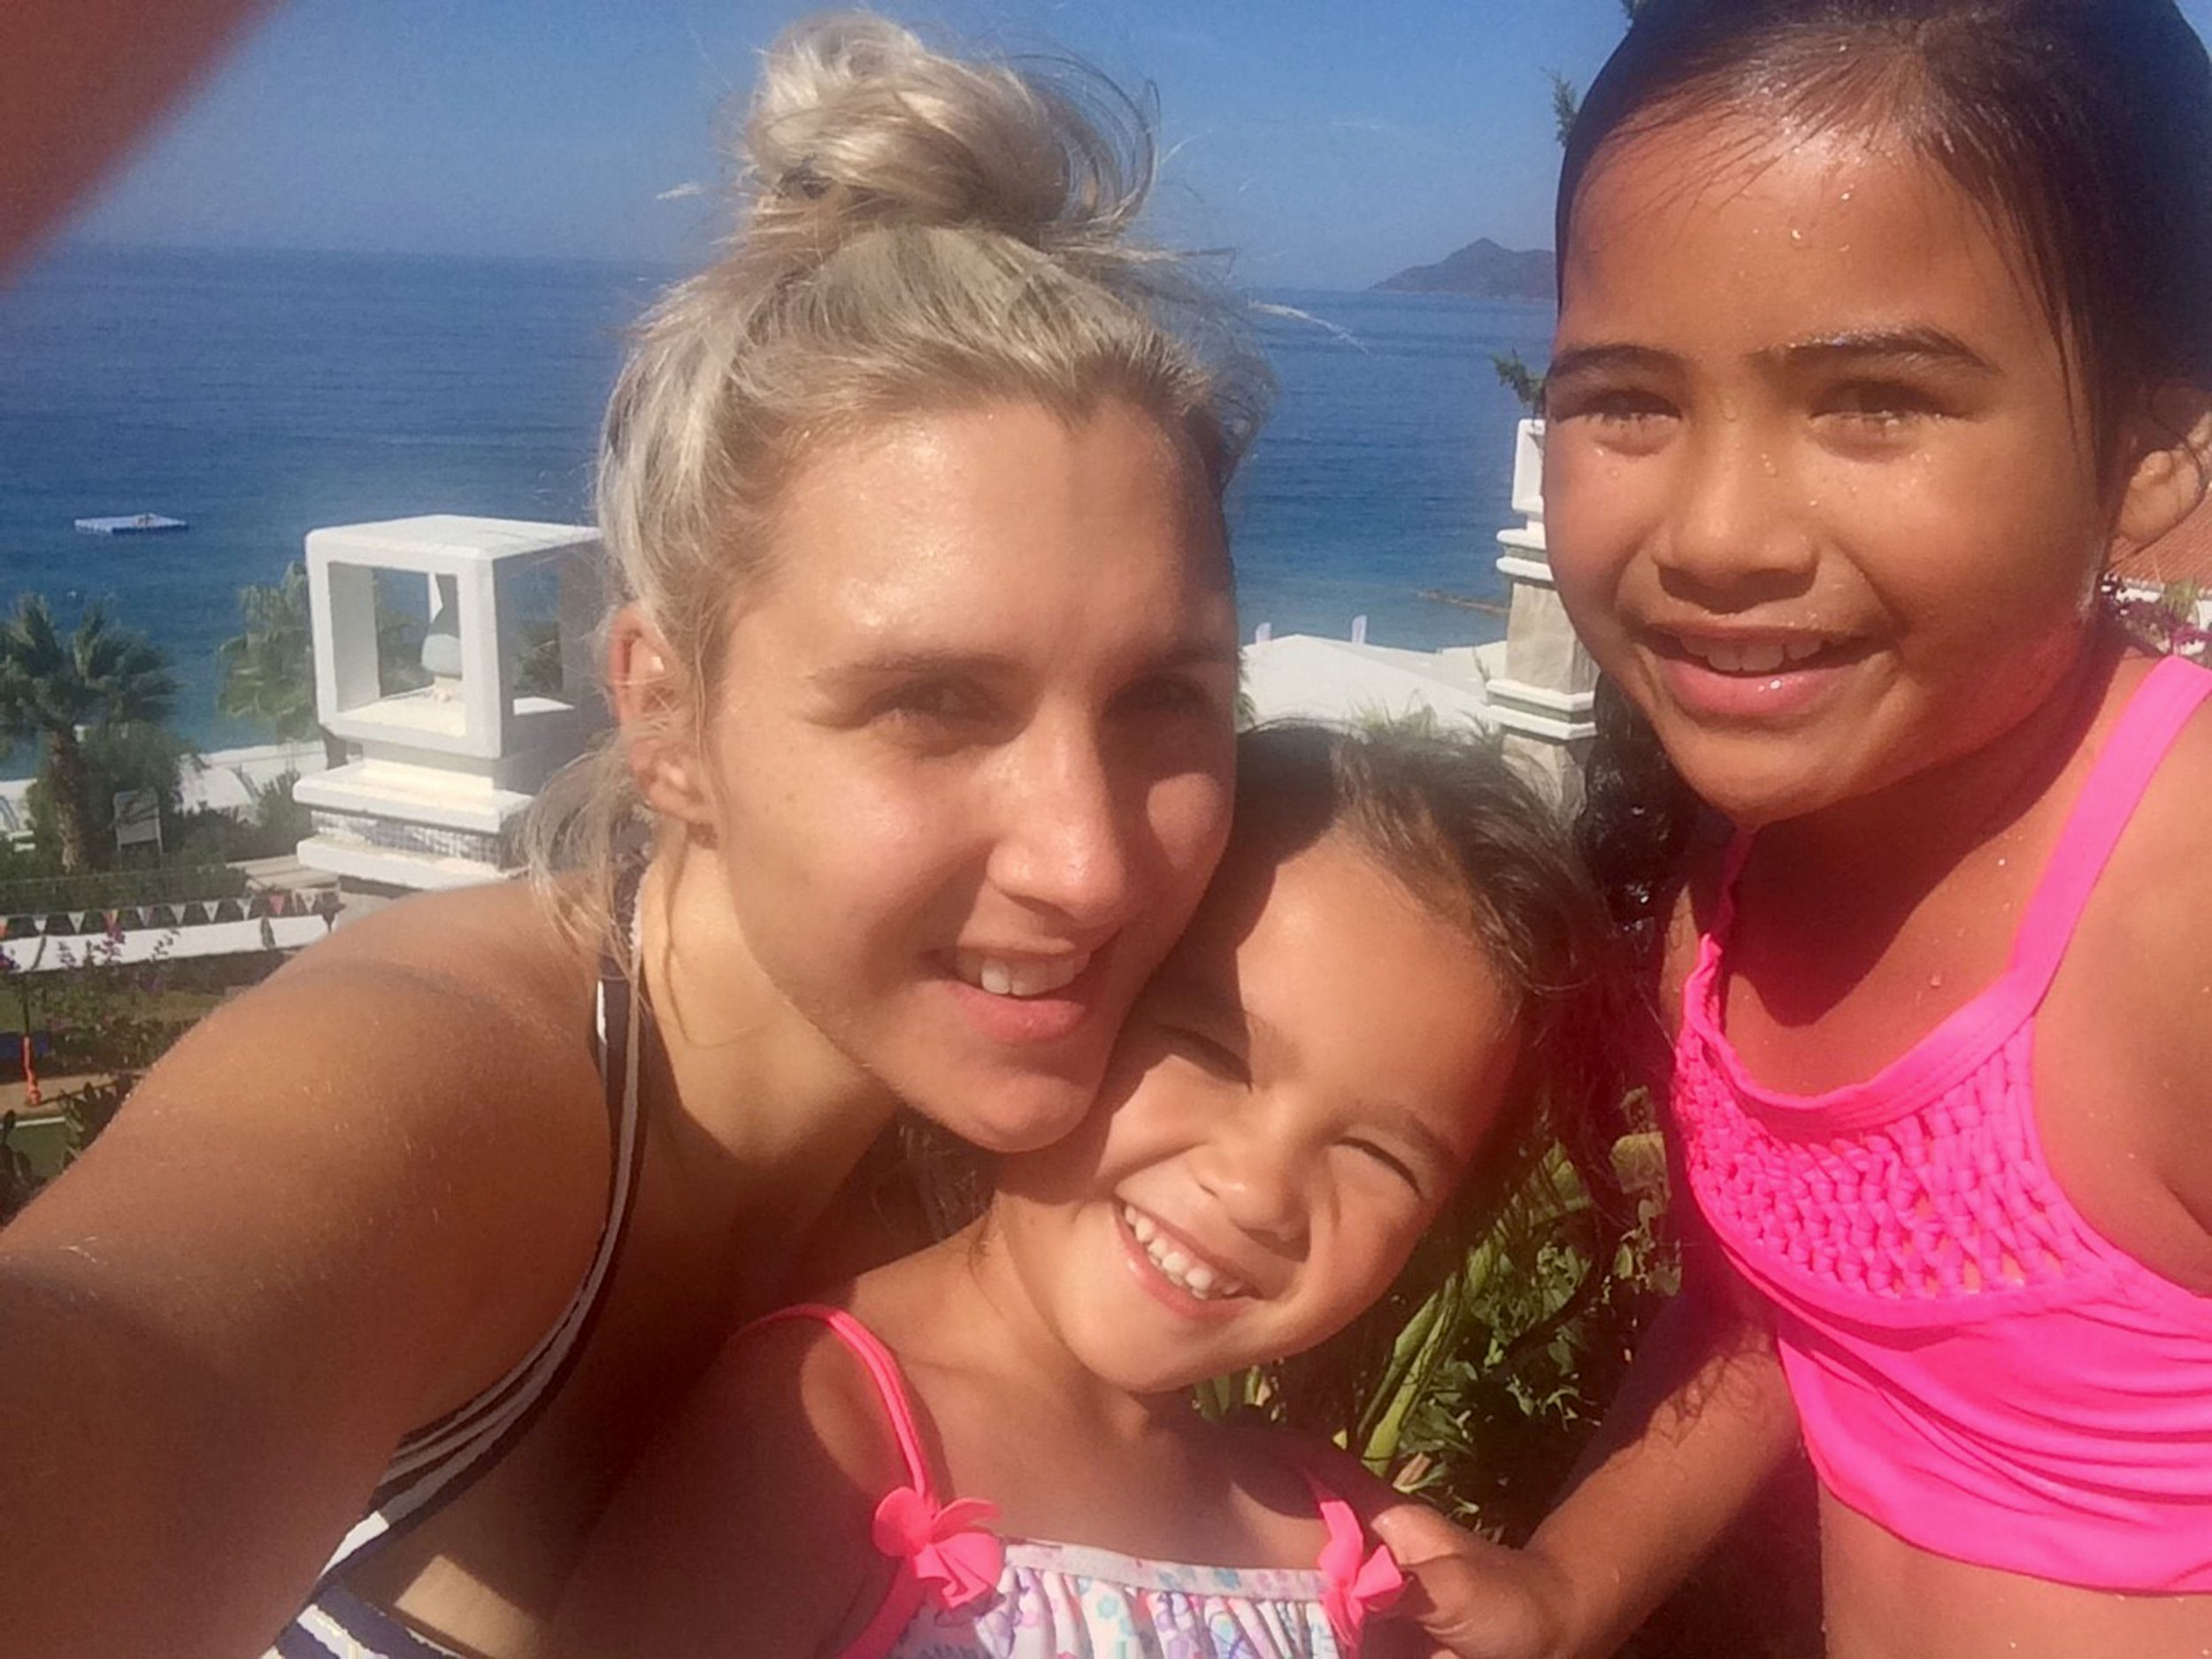 PIC FROM Caters News - (PICTURED: Jemma Joslyn, 32, from Seaford, East Sussex, with her daughters when they were on holiday in Turkey *Jemma does not want her kids to be named*) - A mum-of-two has narrowly avoided DEATH on holiday after being squashed by an obese woman on a waterslide.Jemma Joslyn, 32, paid 2700 for an all inclusive two-week holiday at Liberty Lykia Hotel, Turkey, last September with her two children before it turned into a living nightmare. After using the five star hotels onsite water park, Jemma was left fighting for her life after she claims another holiday-maker hurtled down the water slide and crushed her internal organs.SEE CATERS COPY